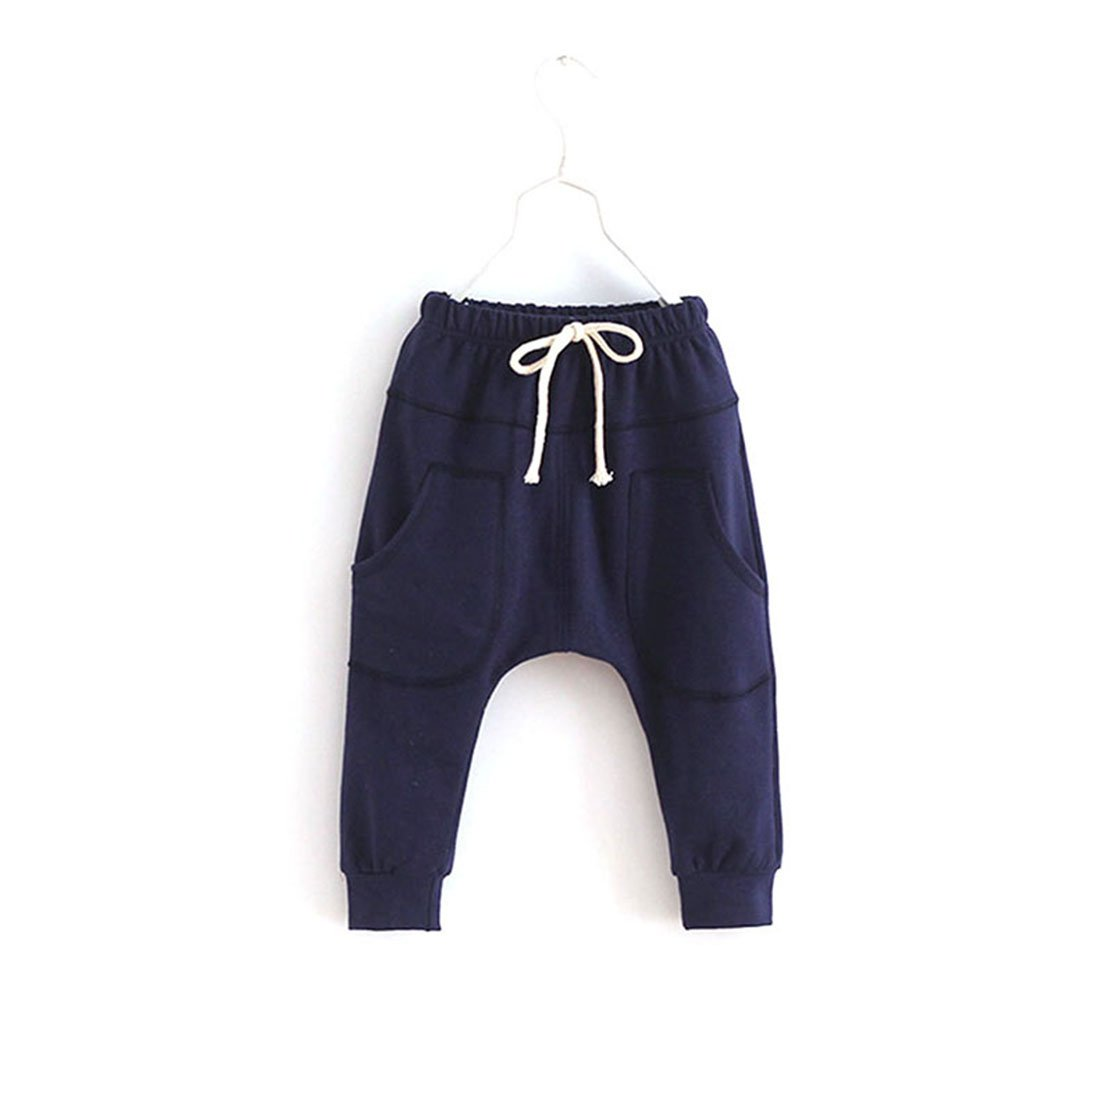 Sports Fitness Kid Toddler Child Harem Pants Baby Boy Girl Trousers Bottoms Blue 6